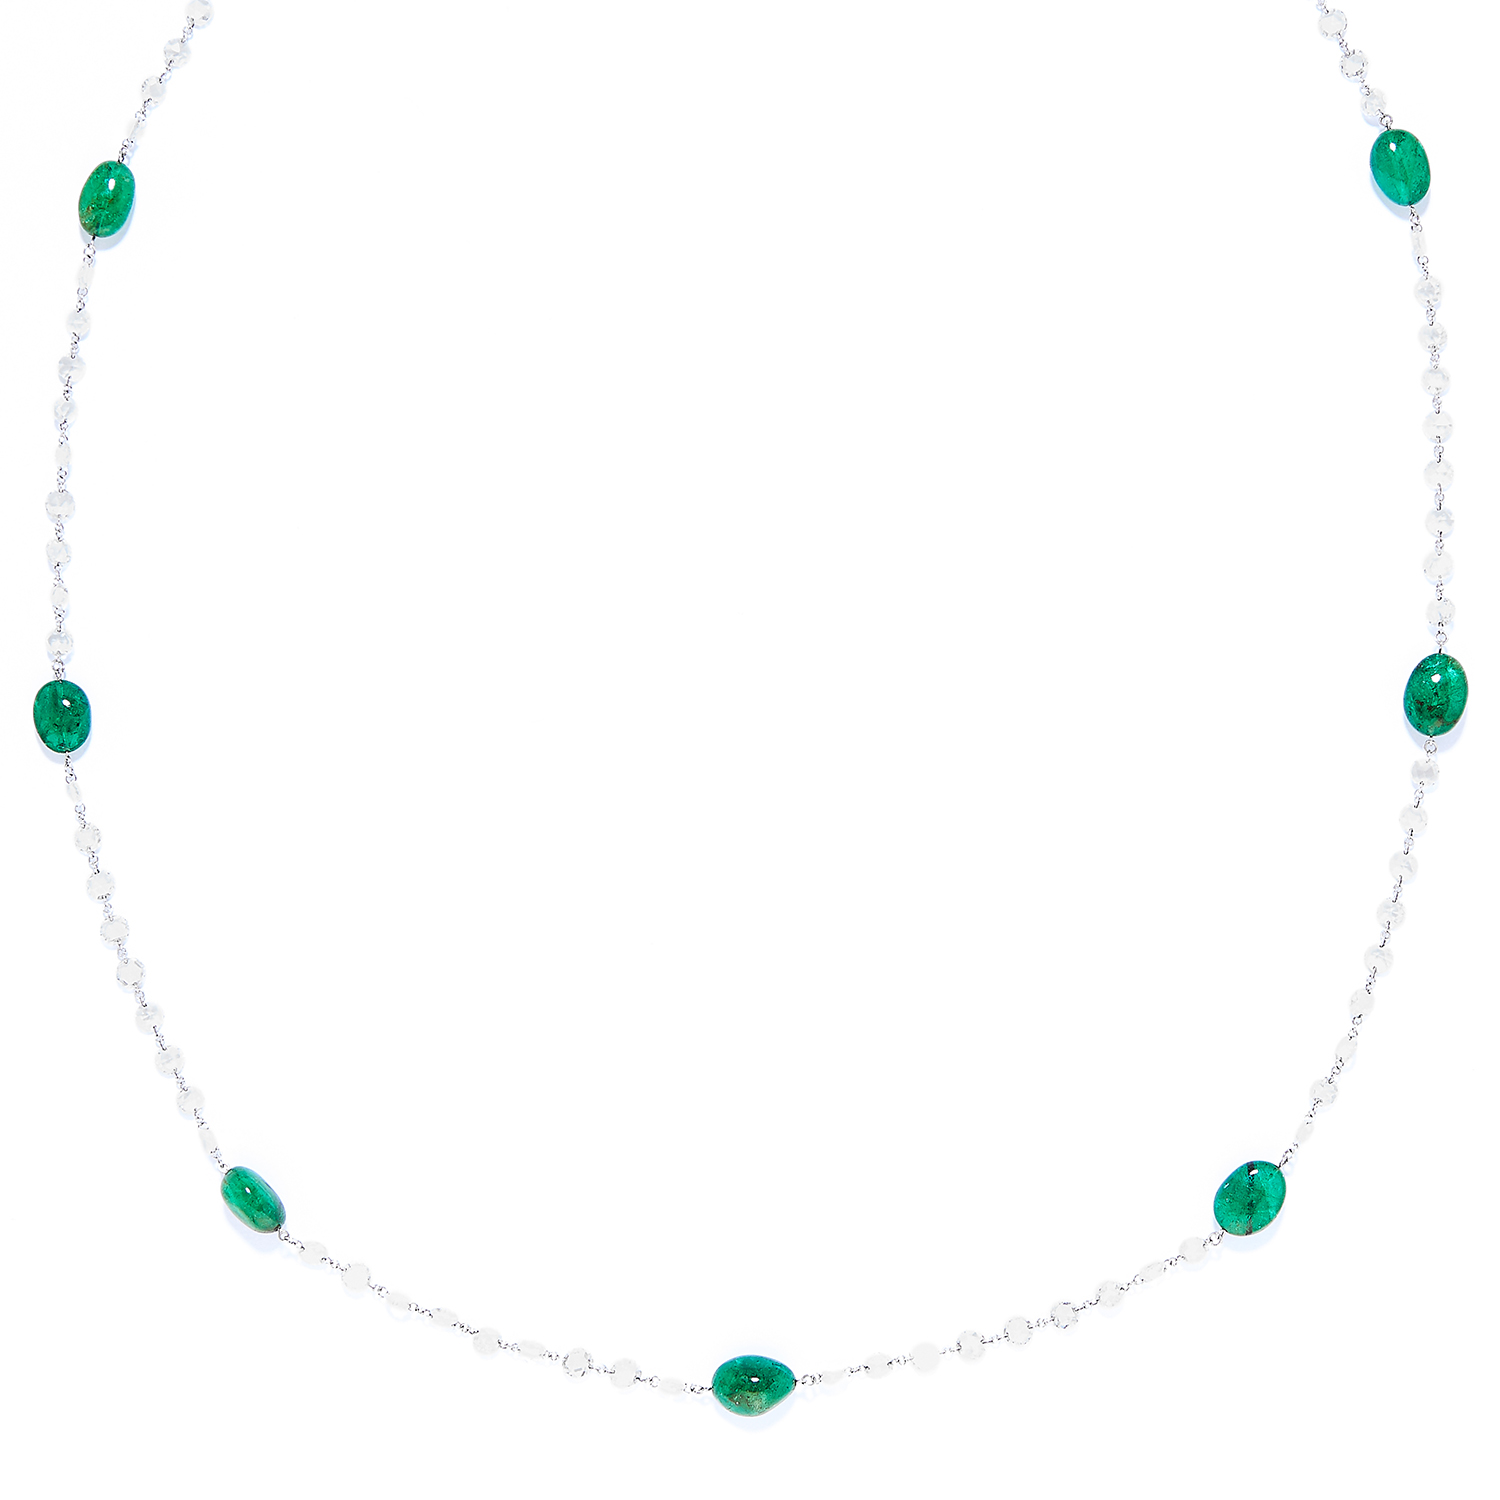 EMERALD AND DIAMOND NECKLACE in 18ct white gold, comprising of alternating polished emerald beads